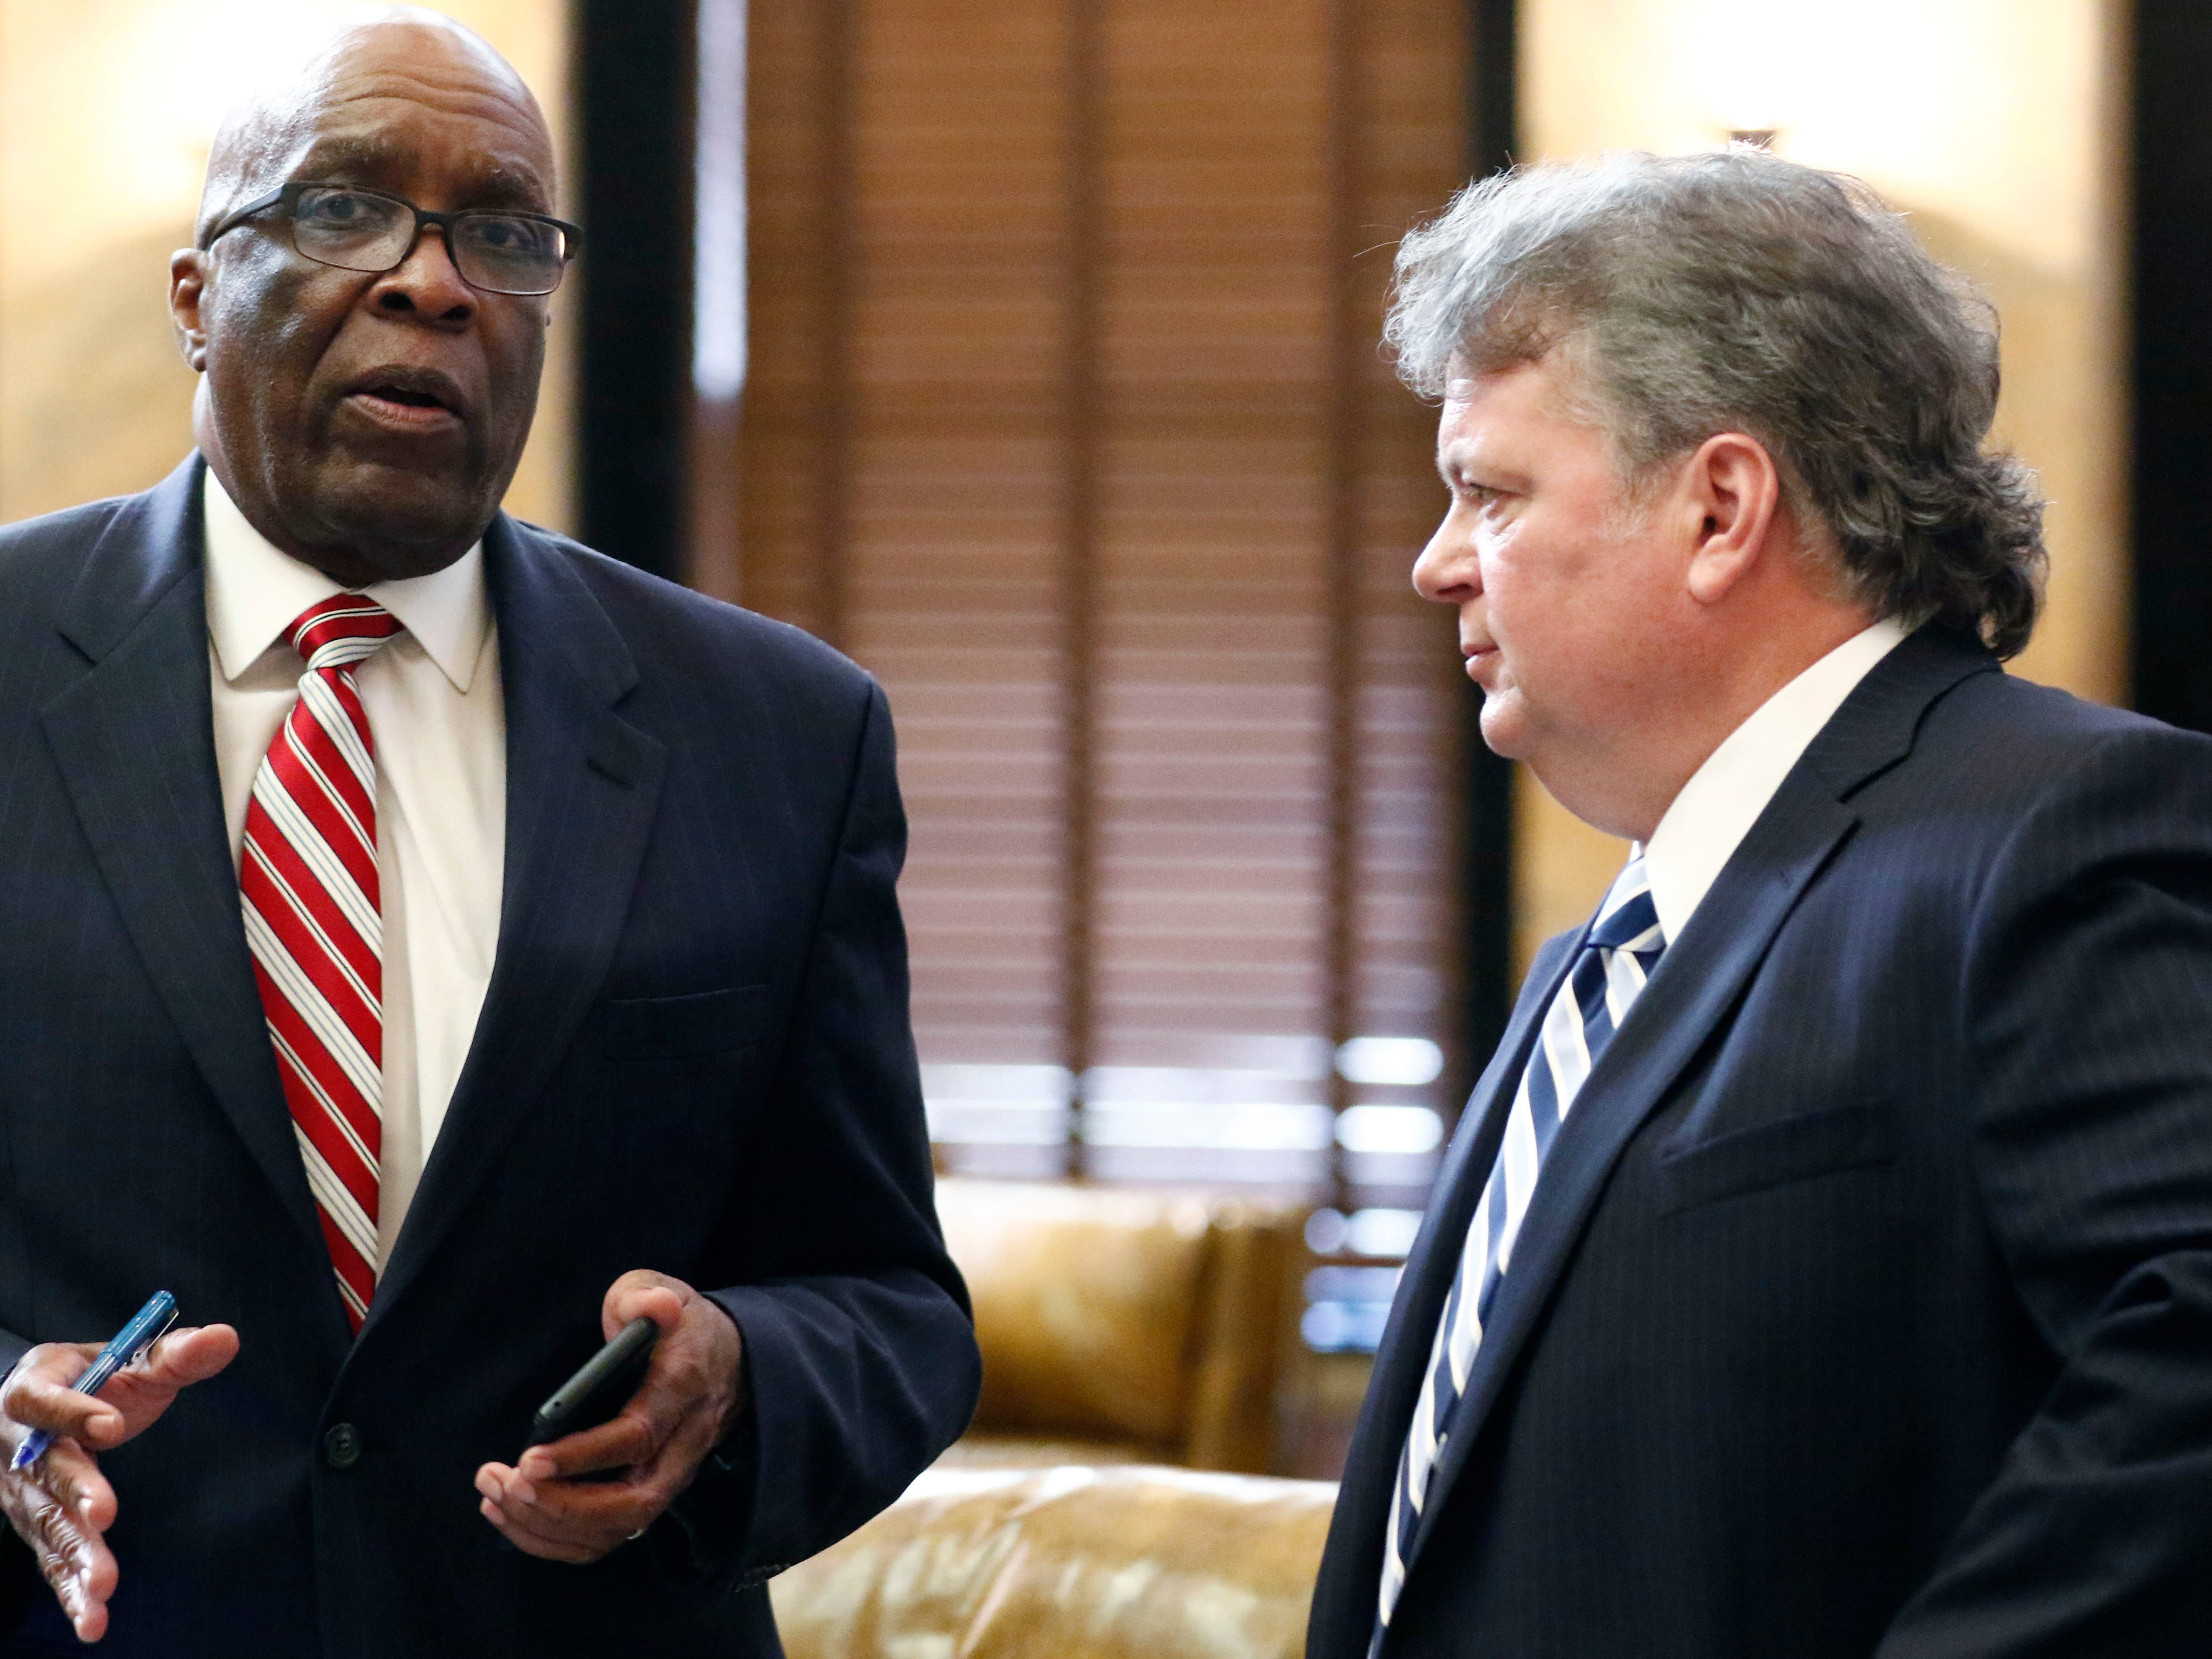 Attorney General Jim Hood, right, visits with Rep. Percy Watson, D-Hattiesburg, in House chambers following the adjournment of the first day of the 2019 Mississippi legislative session at the Capitol in Jackson, Miss., Tuesday, Jan. 8, 2019. Hood, a Democrat, is an announced candidate for governor, and visited with a number of lawmakers as he introduced them to his agency's new legislative liaison.